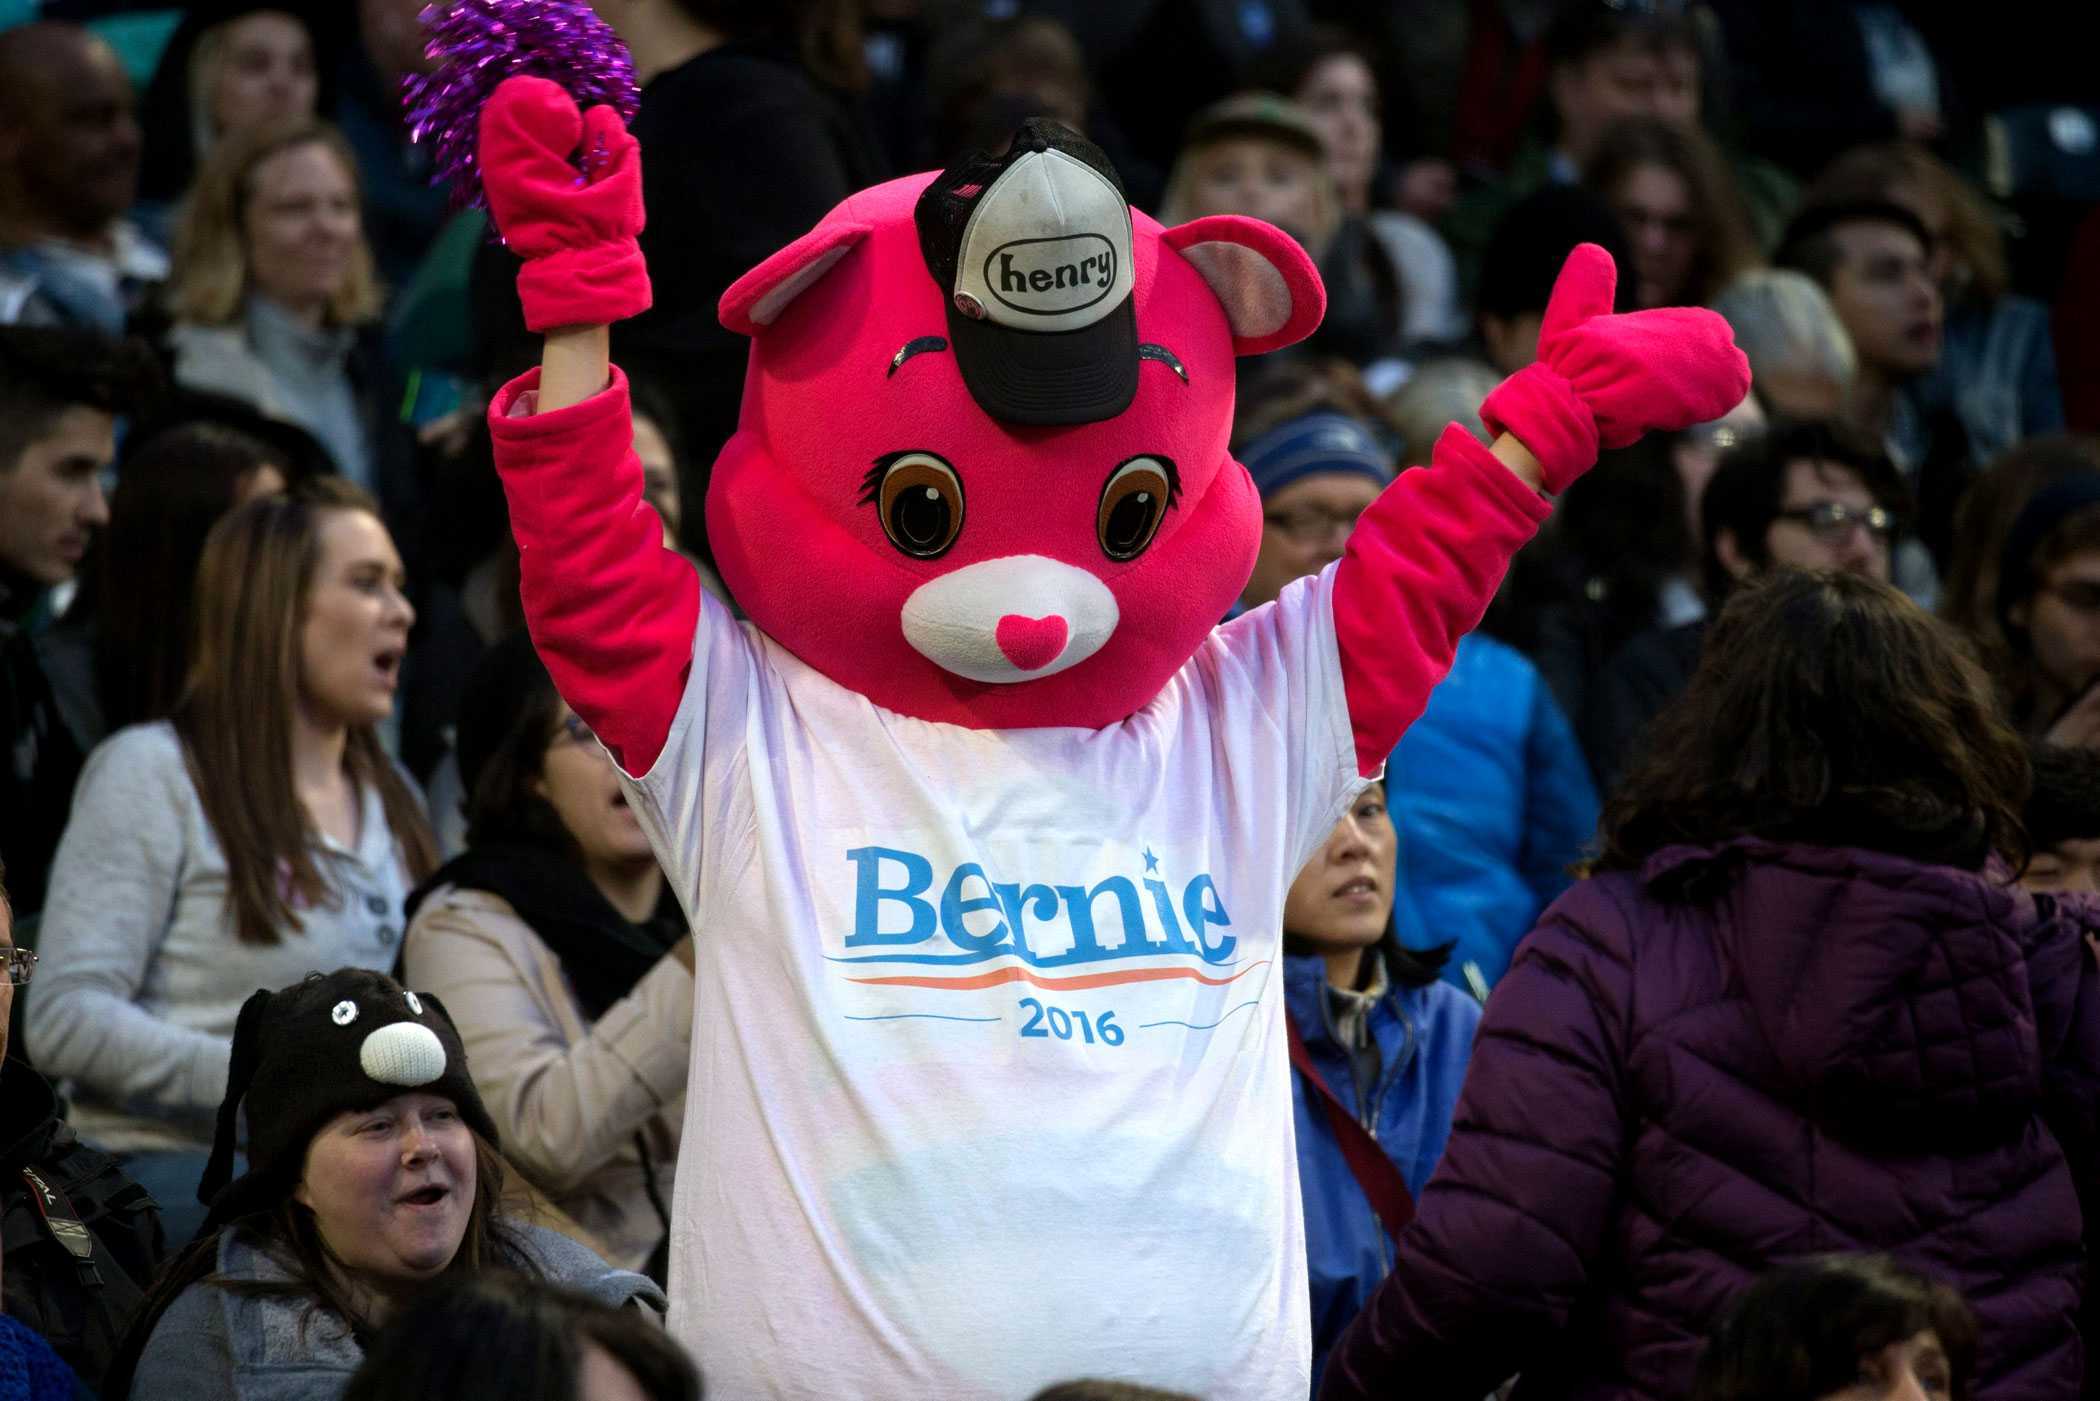 A person dressed as a Care Bear cheers during a campaign rally for Democratic presidential candidate, Vermont Sen. Bernie Sanders in Seattle, on March 25, 2016.